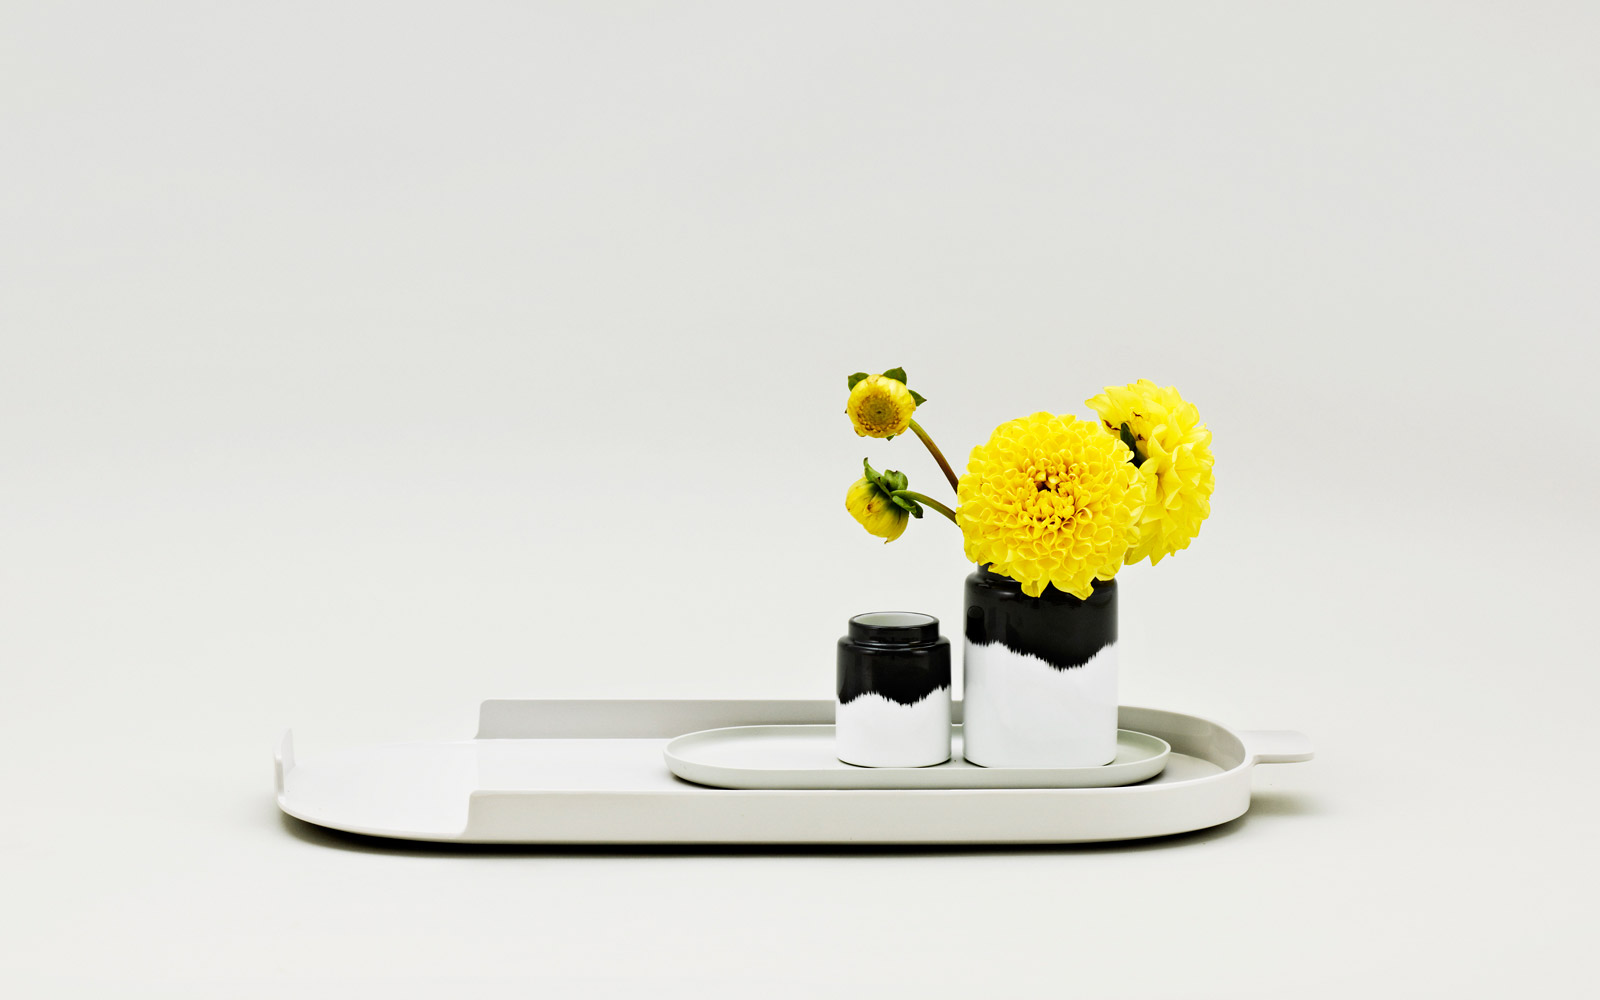 Vases-design-Agnes-Fries-Normann Copenhagen-010